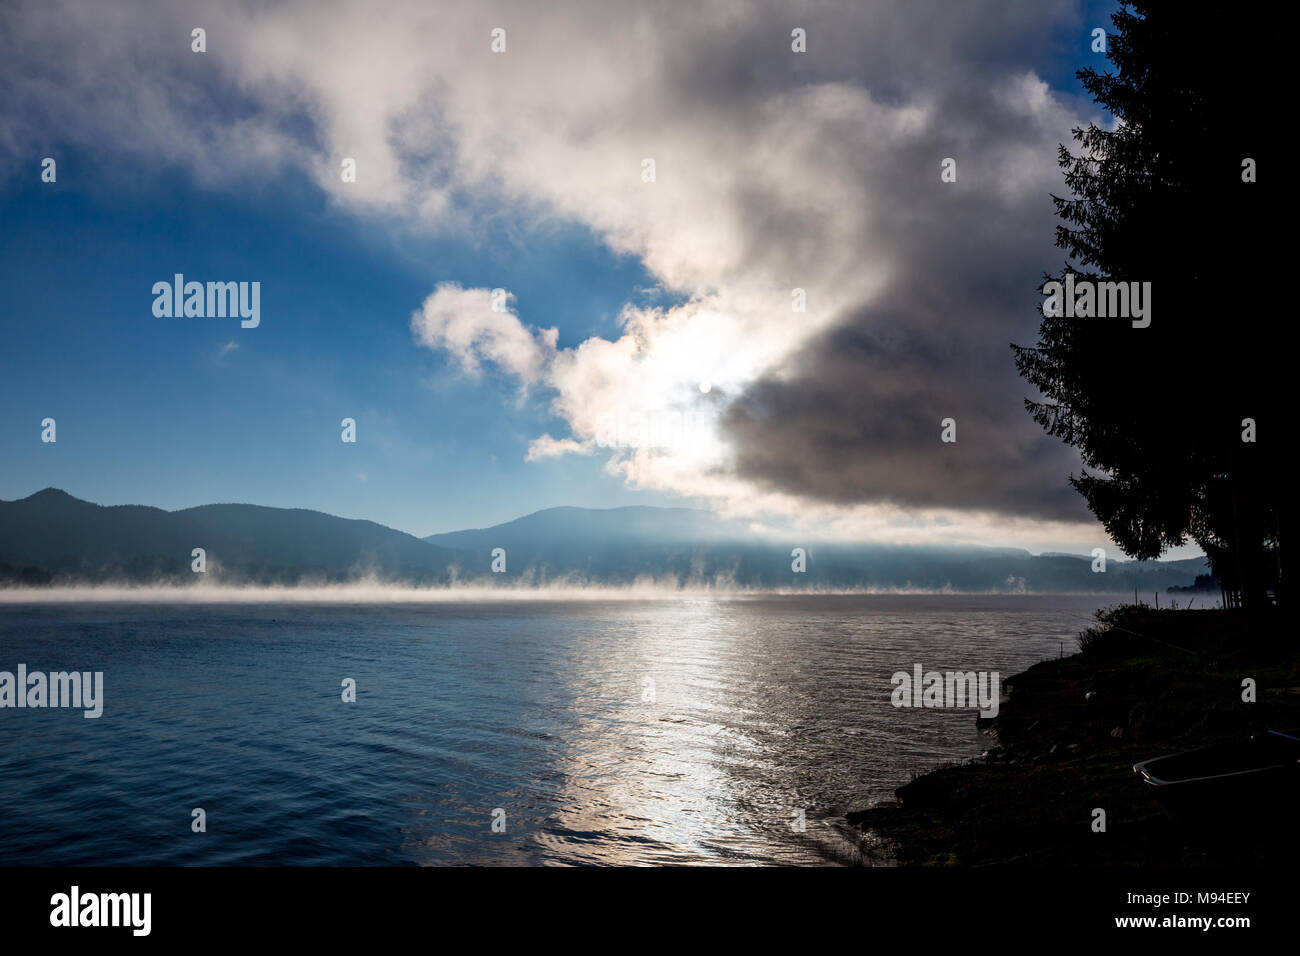 Autumn Sun coming out of clouds, light reflections on lake surface with water evaporations at lake Dospat, Rhodope mountains, Bulgaria - Stock Image